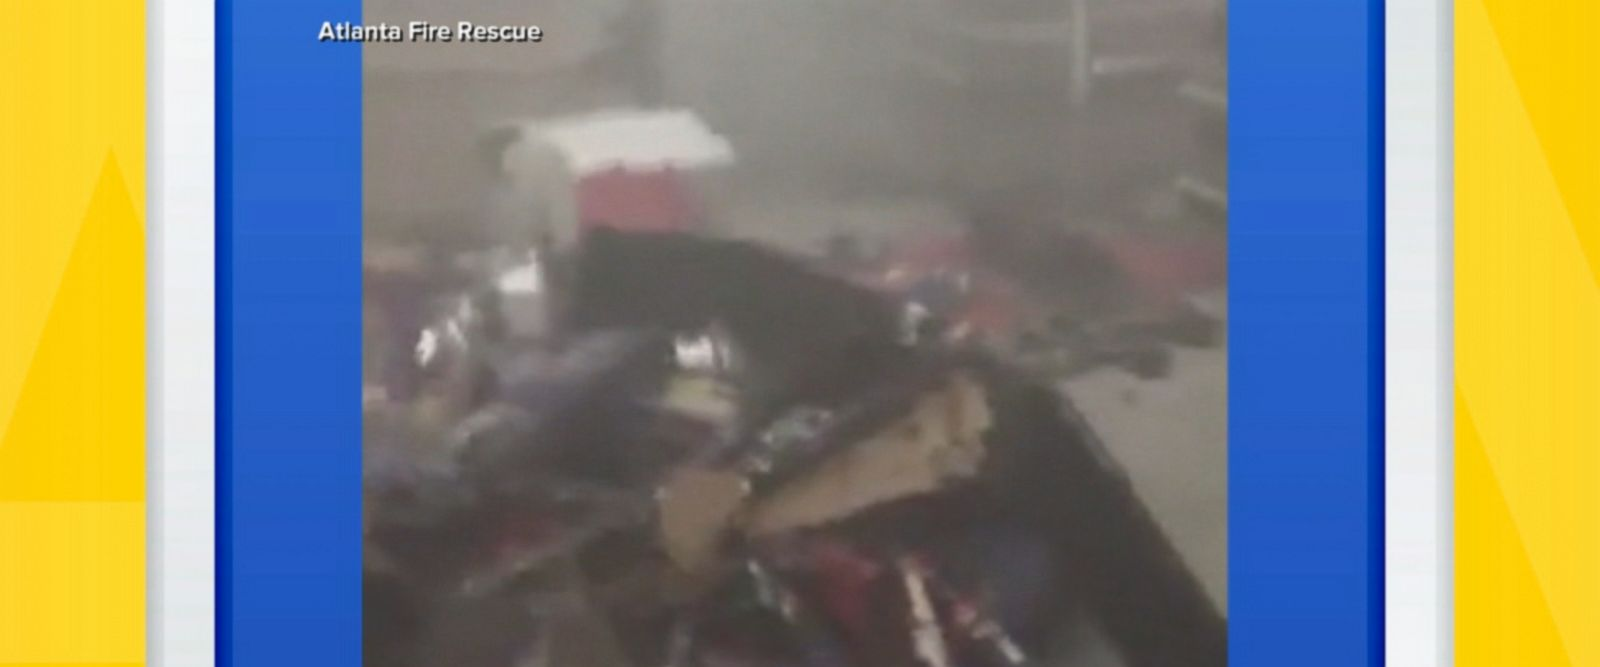 Shoppers at an Atlanta grocery store had to abandon their carts and leave the store after someone ignited a fireworks display inside, setting off the sprinkler system.